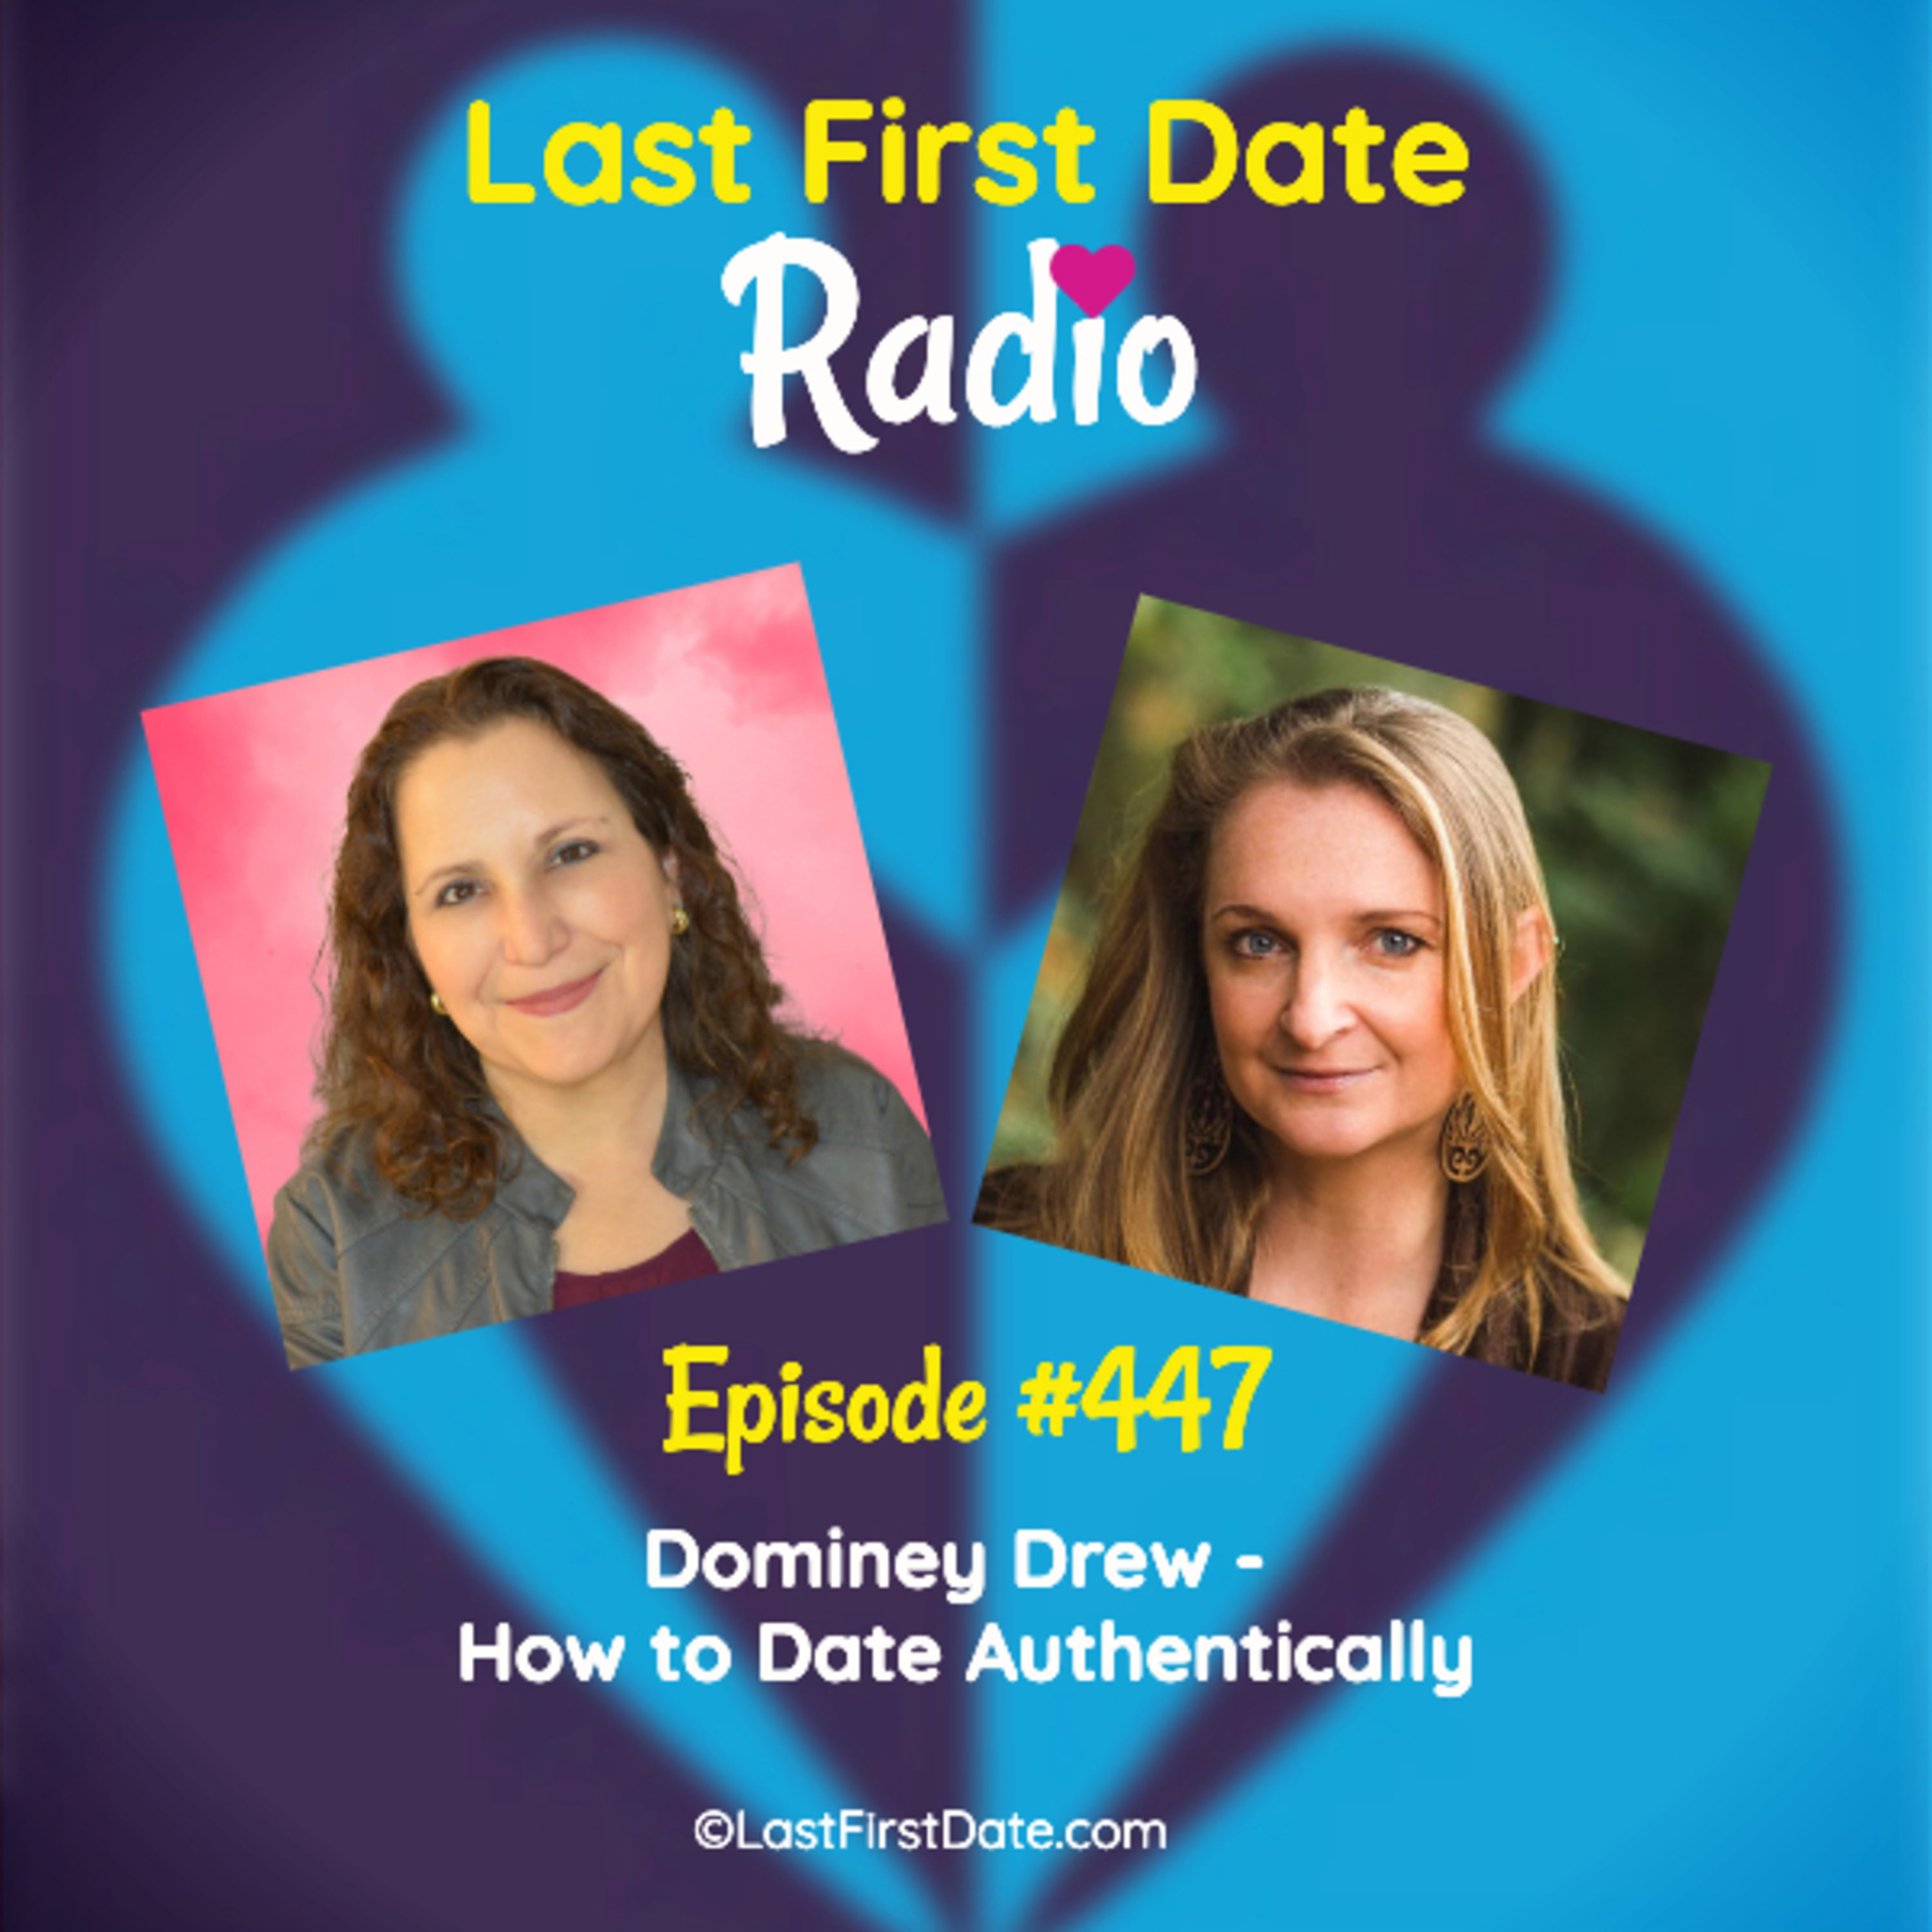 Last First Date Radio - EP 447: Dominey Drew - How to Date Authentically